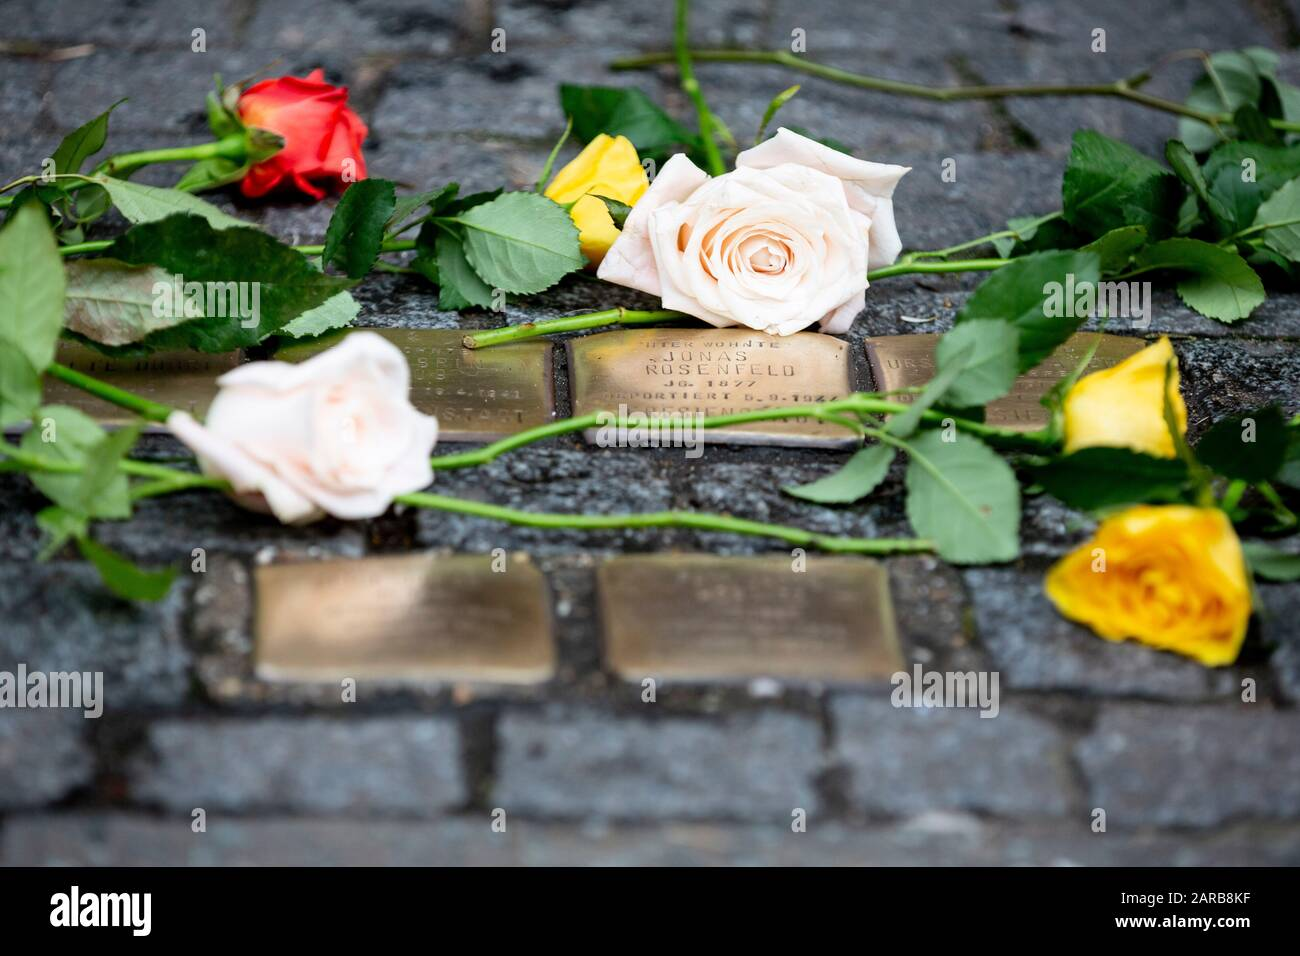 Dresdener Strasse Stock Photos Dresdener Strasse Stock Images Alamy